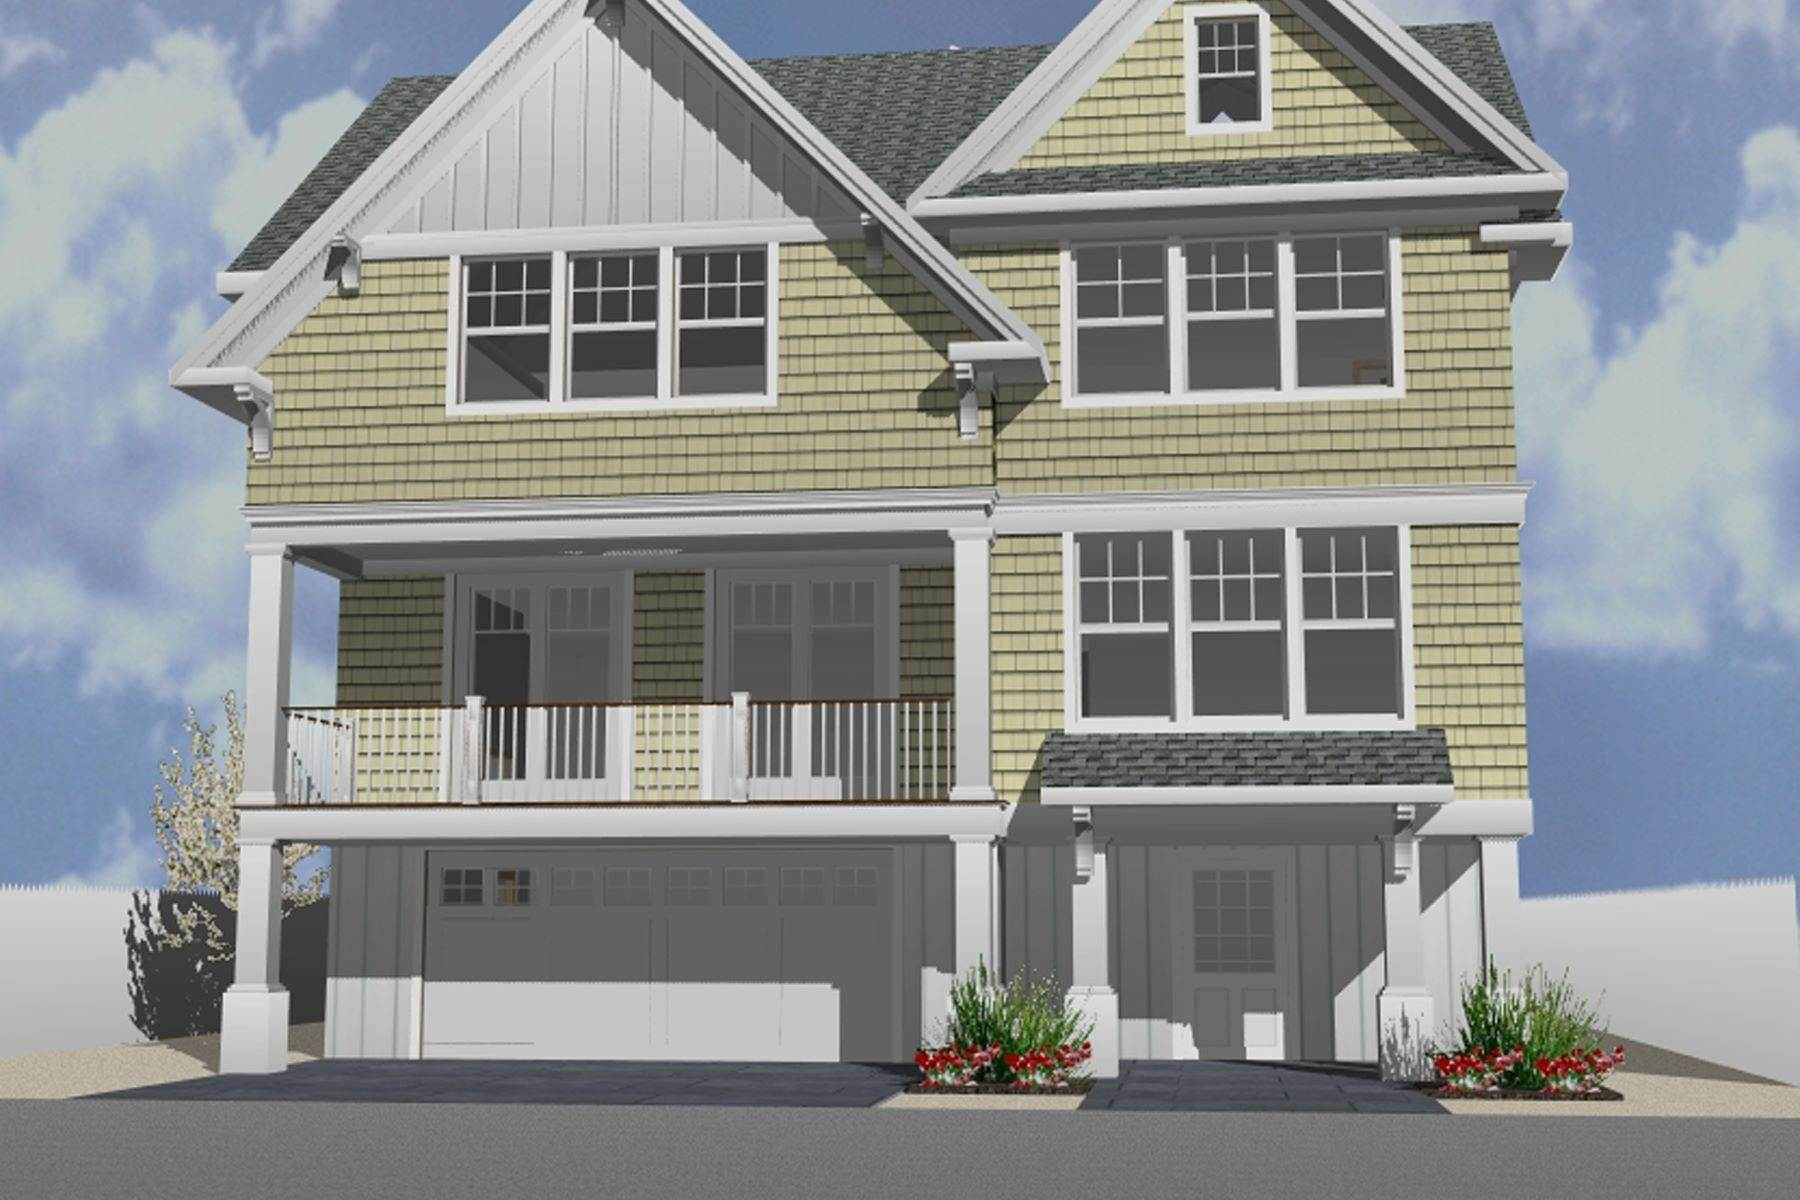 Single Family Homes for Sale at Unique Opportunity To Be Part Of A Brand New Private Beach Association 6 Cummins Street Mantoloking, New Jersey 08738 United States